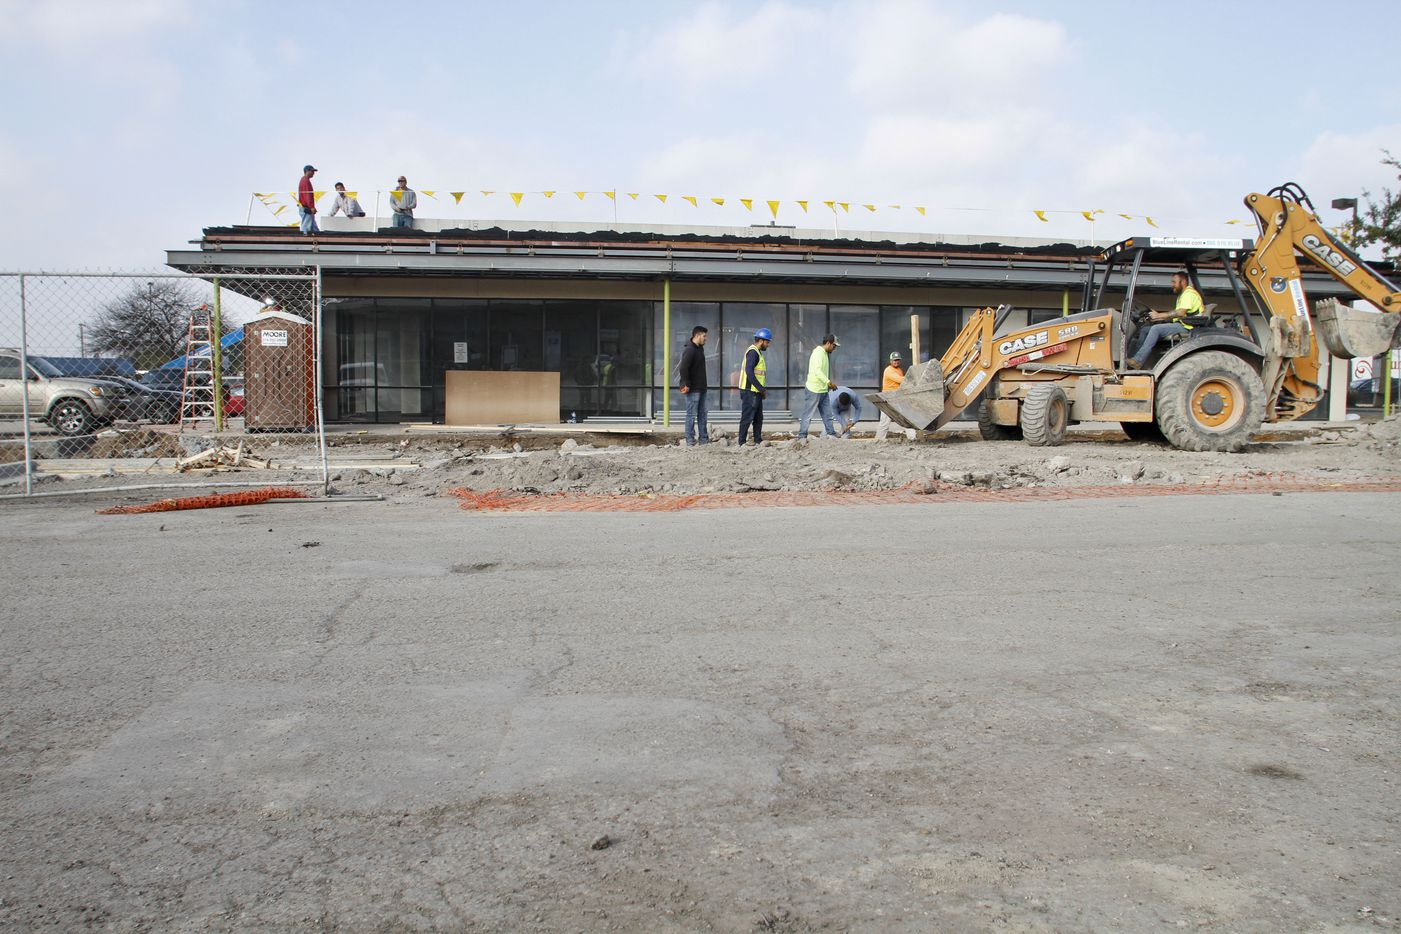 Construction is underway to renovate Lake Highlands' Lakeridge retail center at Audelia and Walnut Hill in Dallas.